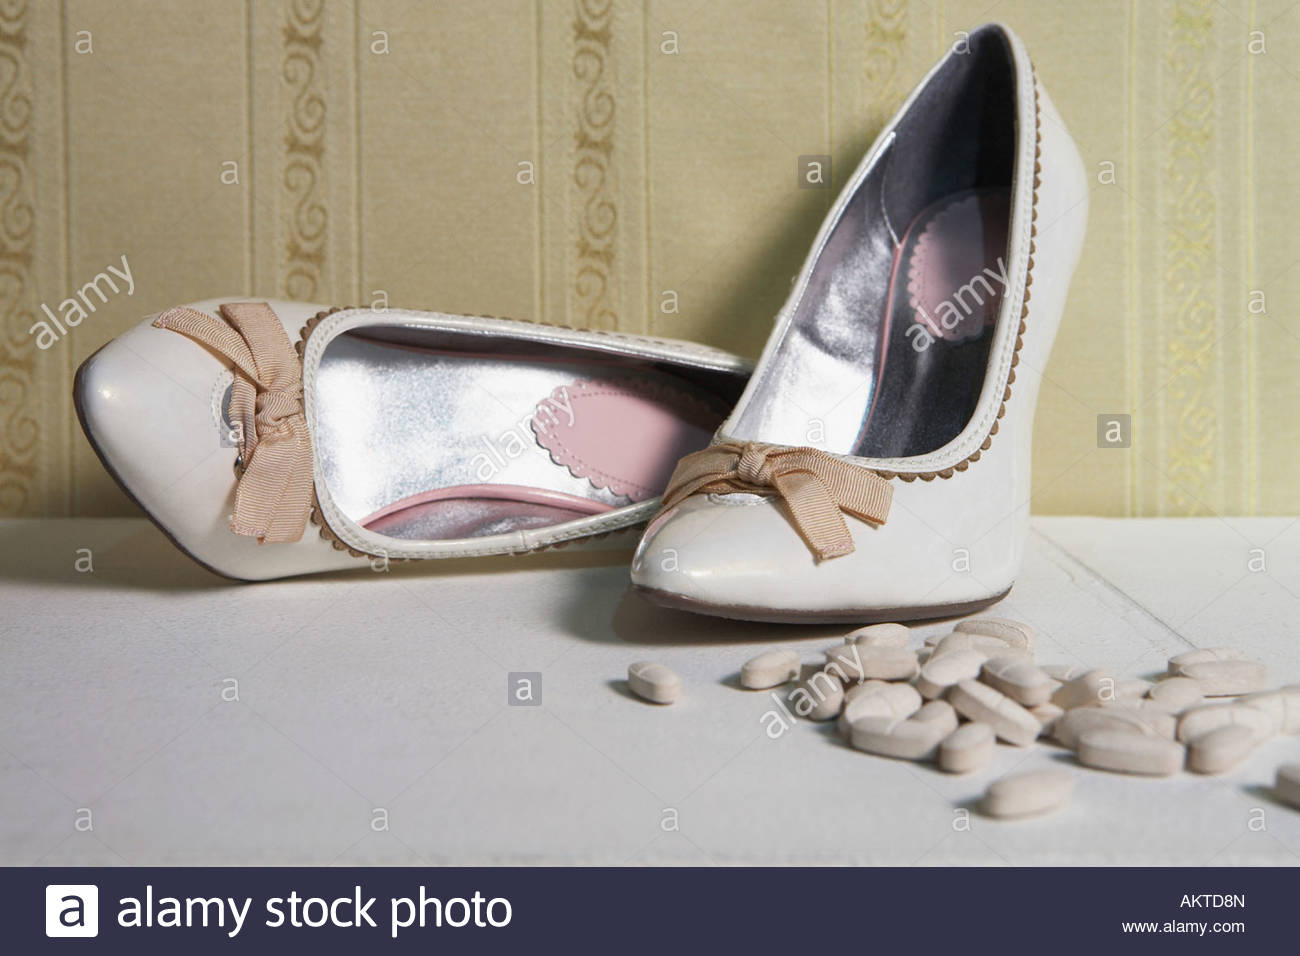 Pair of high heeled shoes and tablets - Stock Image